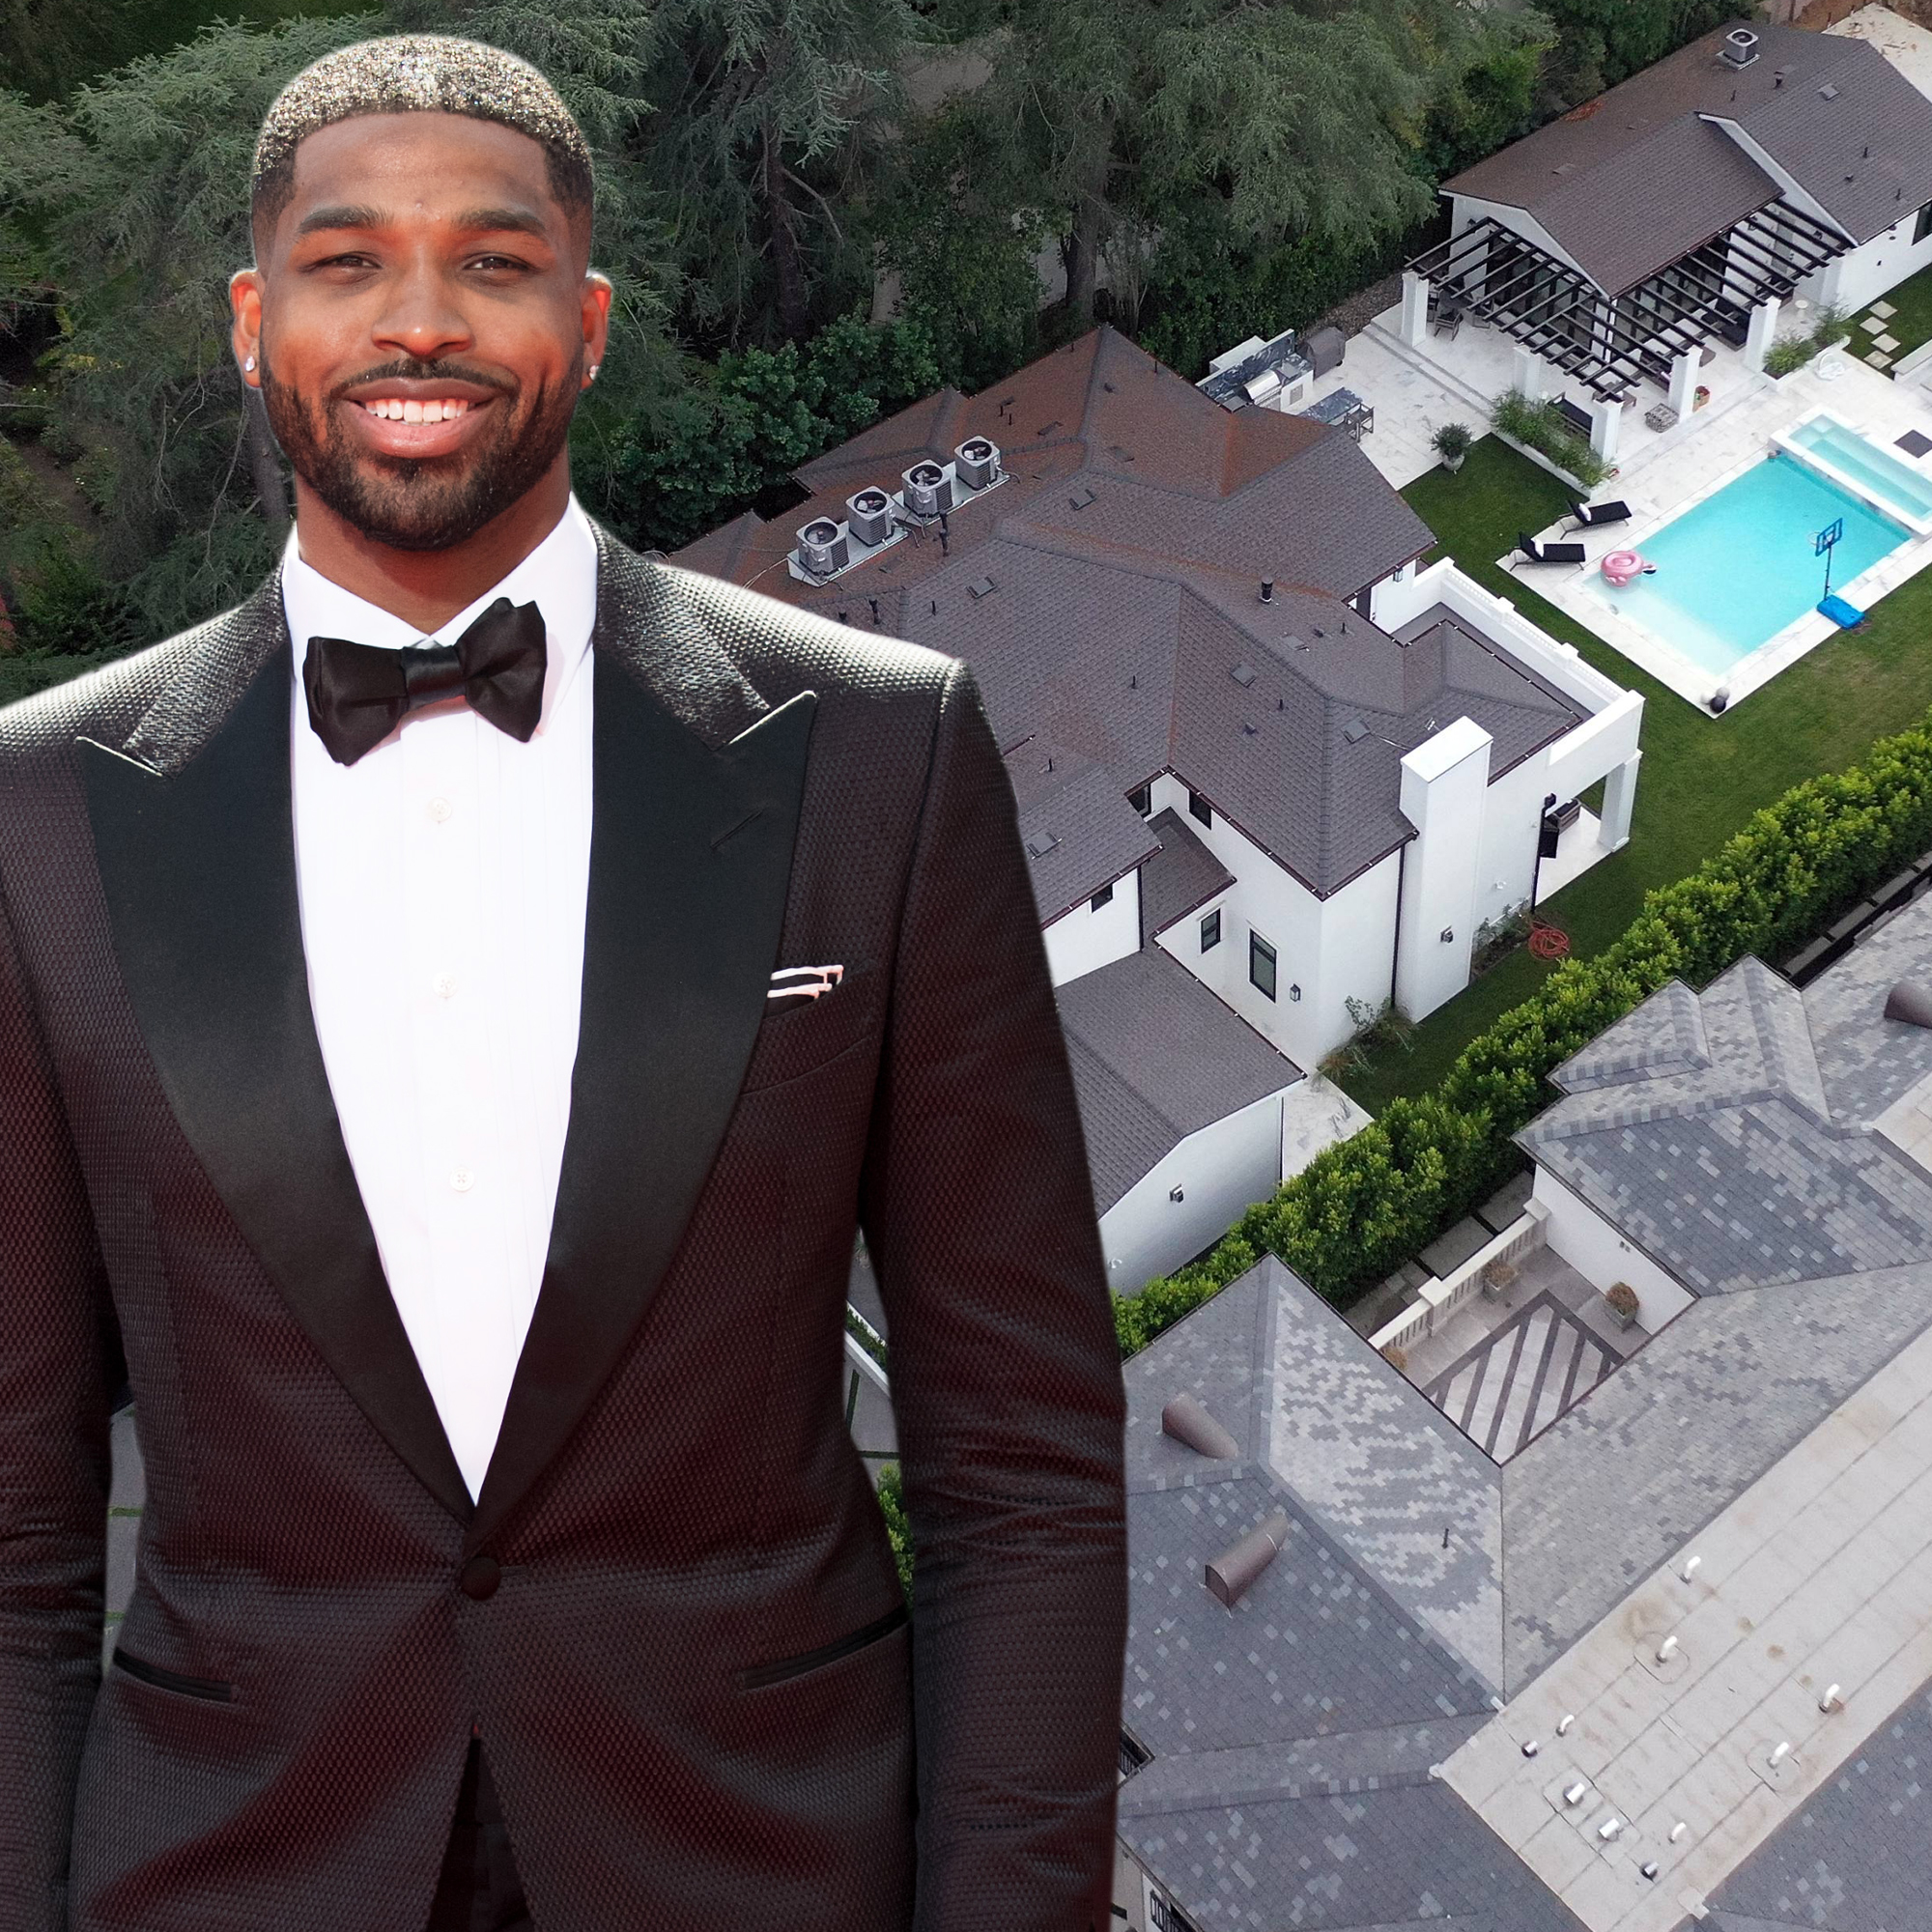 Feast Your Eyes on Tristan Thompson's $6.5 Million Bachelor Pad in L.A.